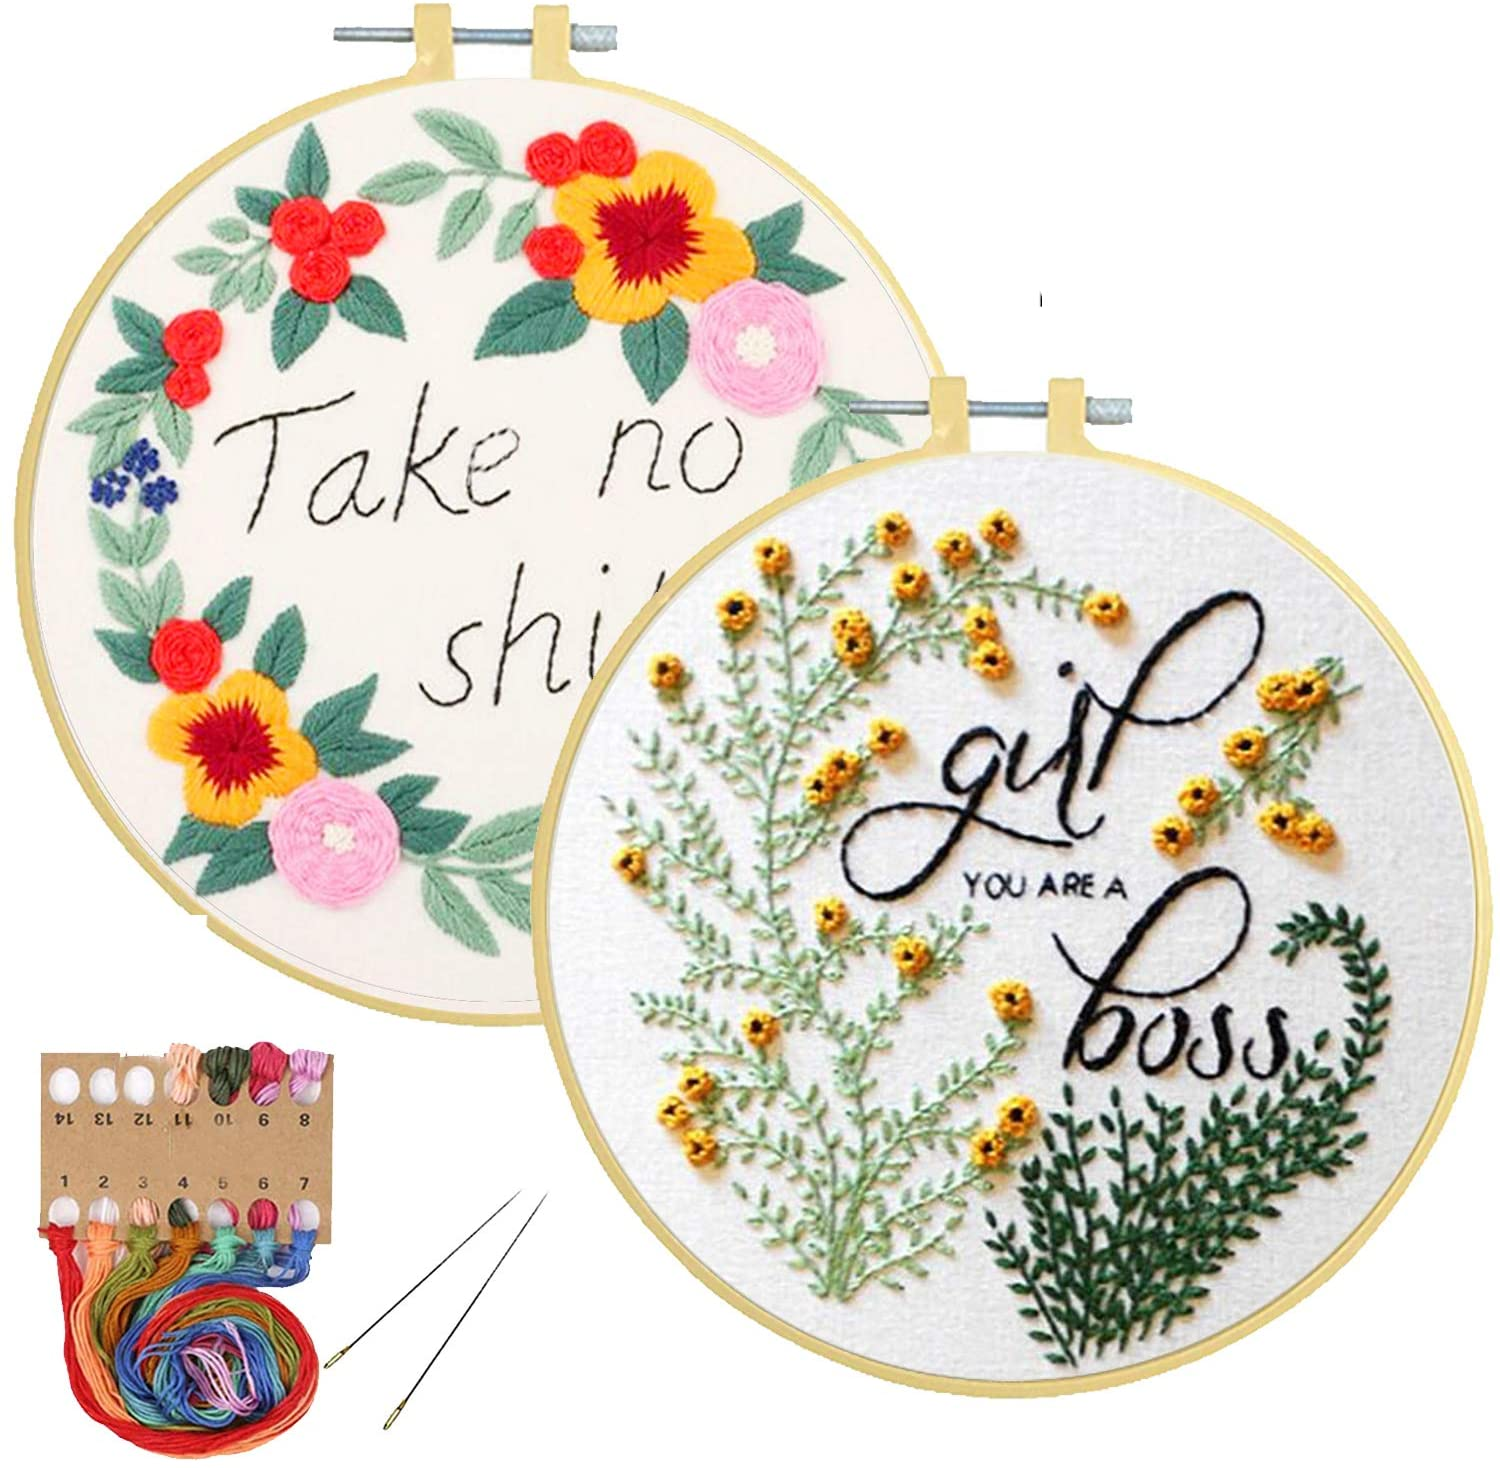 2 Pack Embroidery Kits with Pattern for Beginners Adults, Pinkol Cross Stitch Kits Stamped Needlepoint with Embroidery Hoops Cloth Fabric Thread